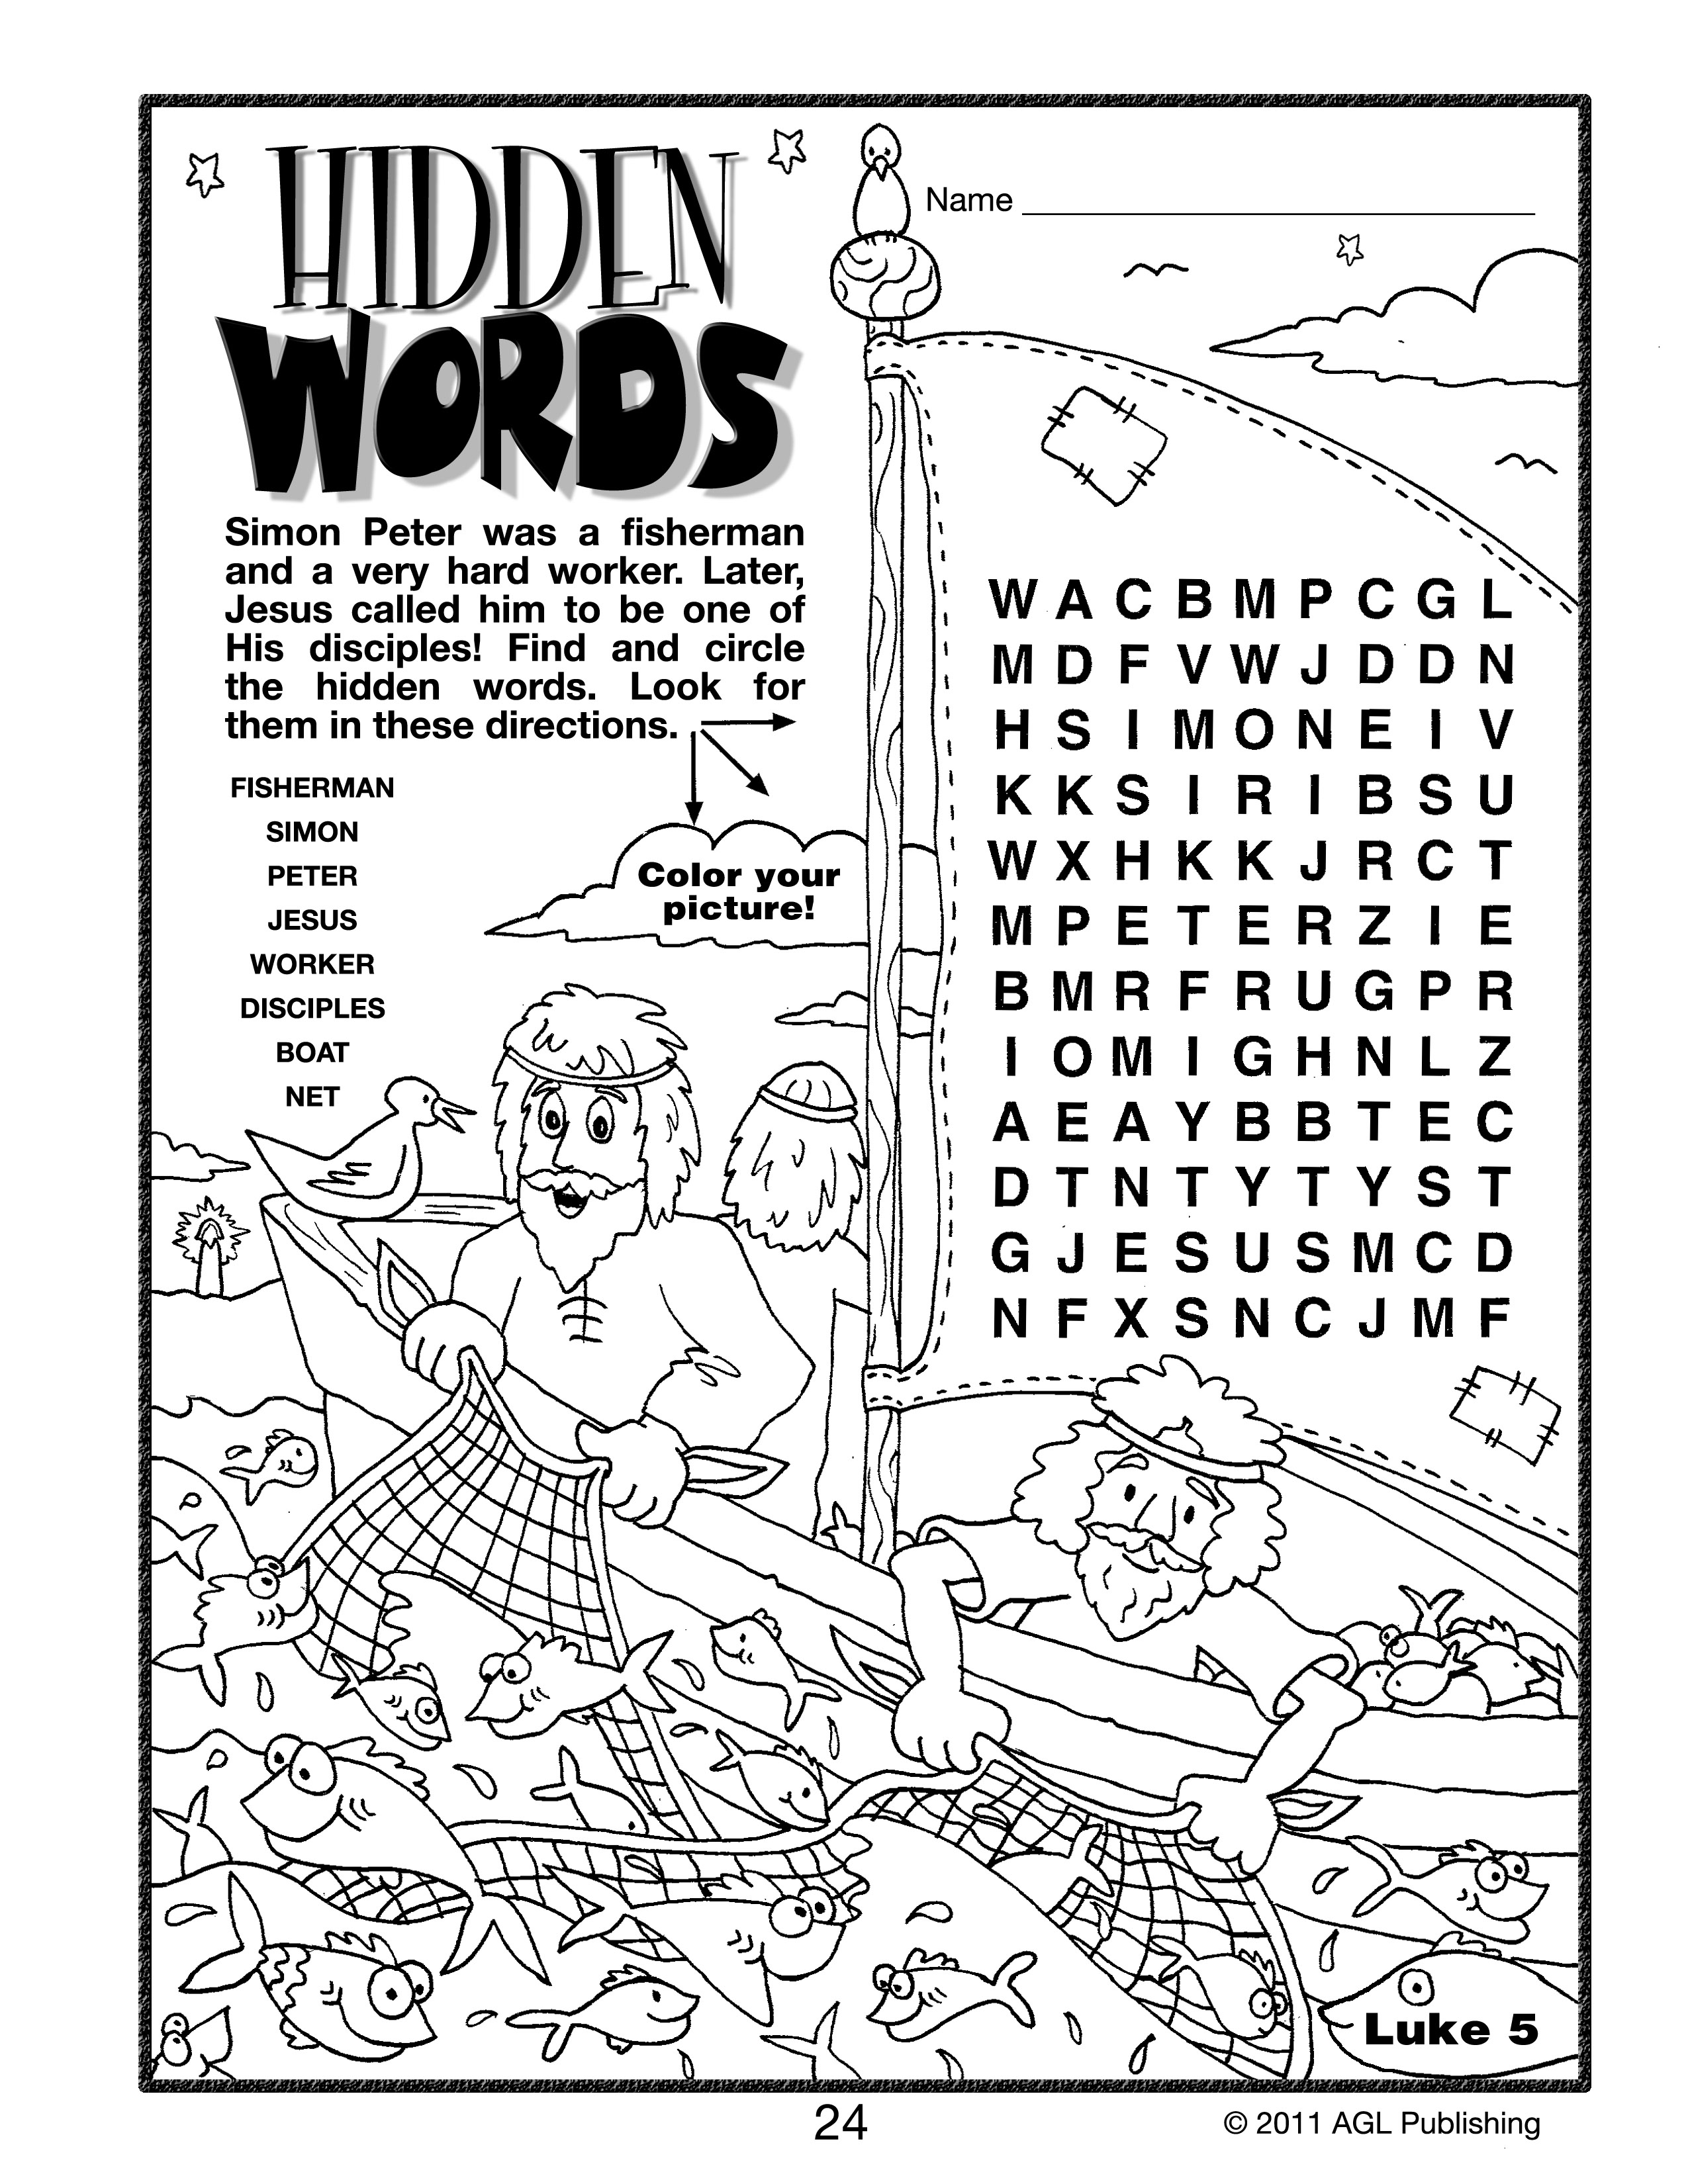 shadrach meshach and abednego coloring page - valuable bible tools activities grade 1 2